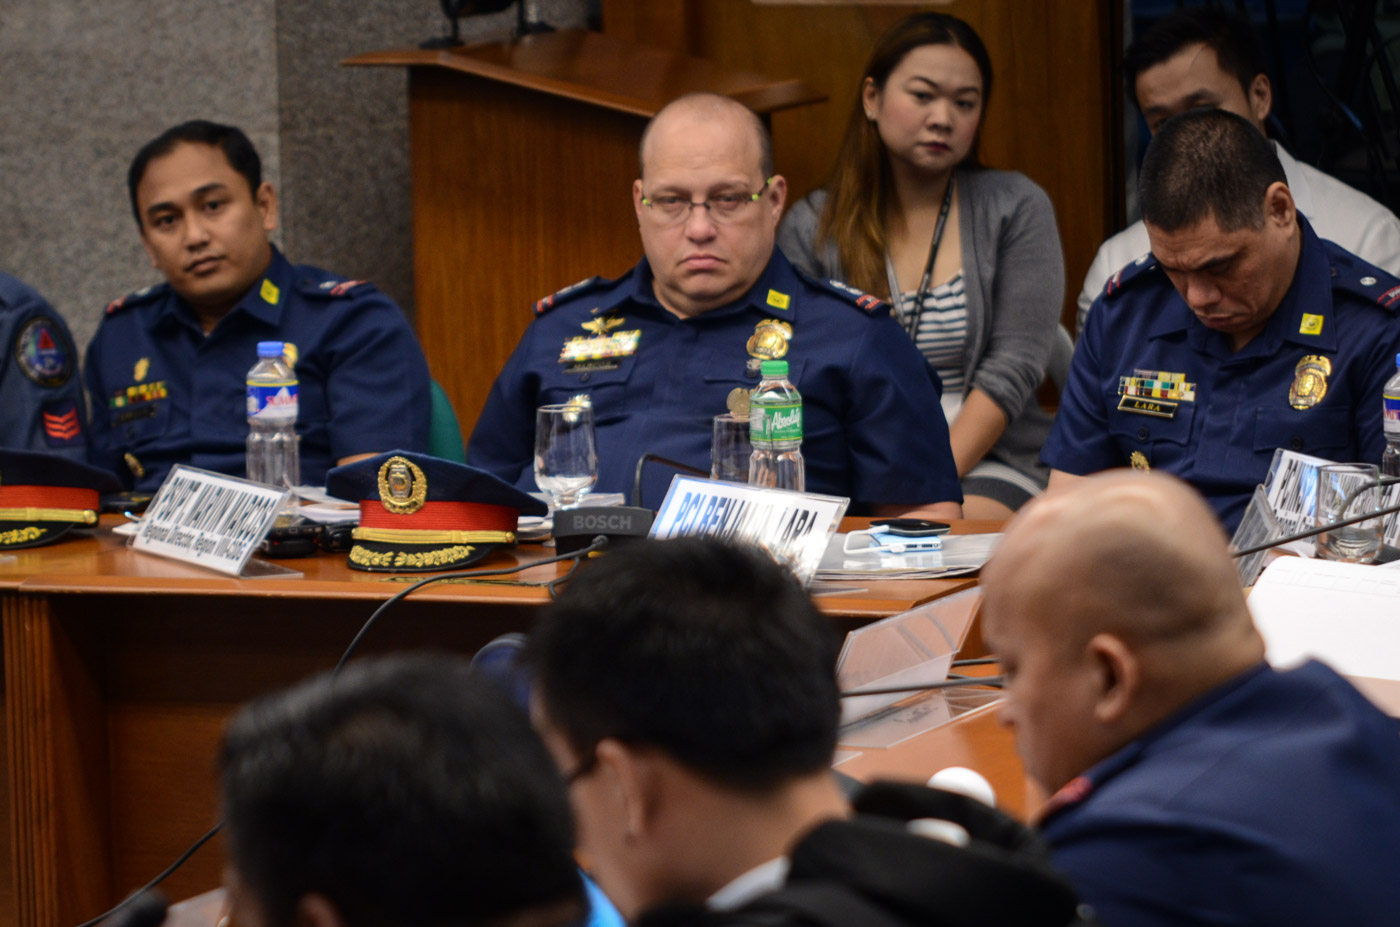 CIDG 8. Superintendent Marvin Marcos looks on as Kerwin Espinosa accuses him of asking for P3 million during the 2016 elections. File photo by LeAnne Jazul/Rappler